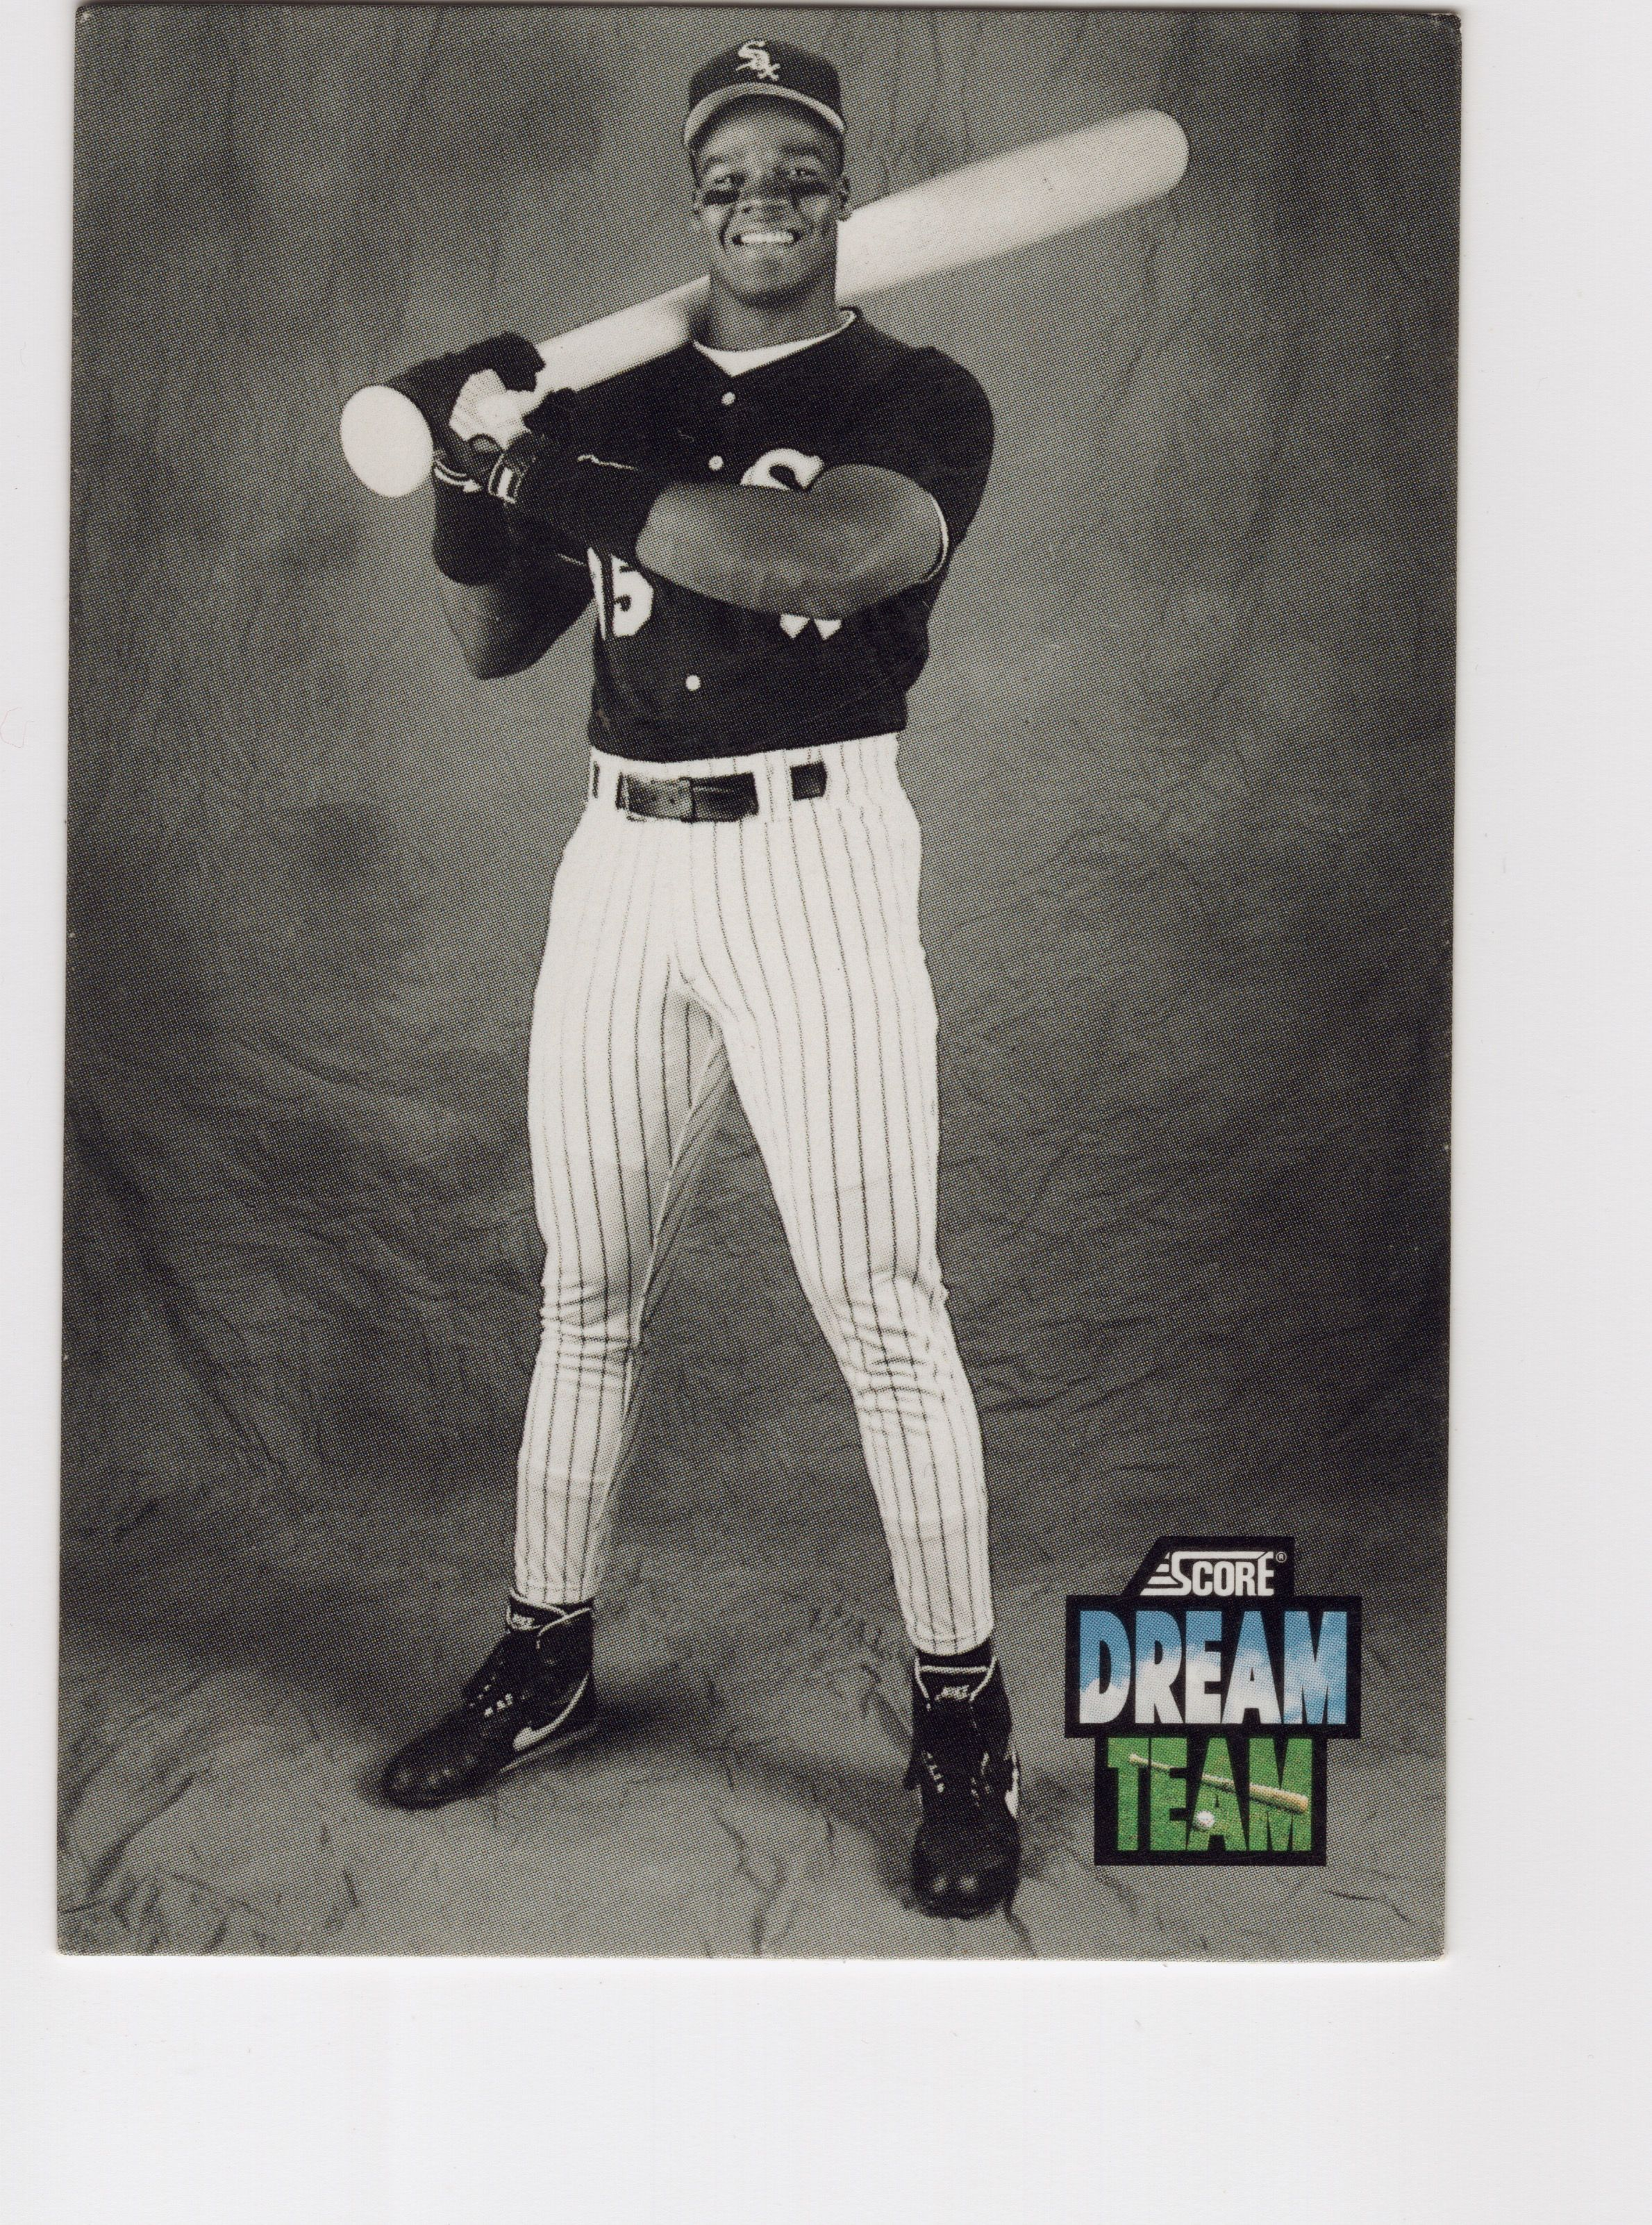 1992 Score Dream Team Frank Thomas 90s Baseball Cards